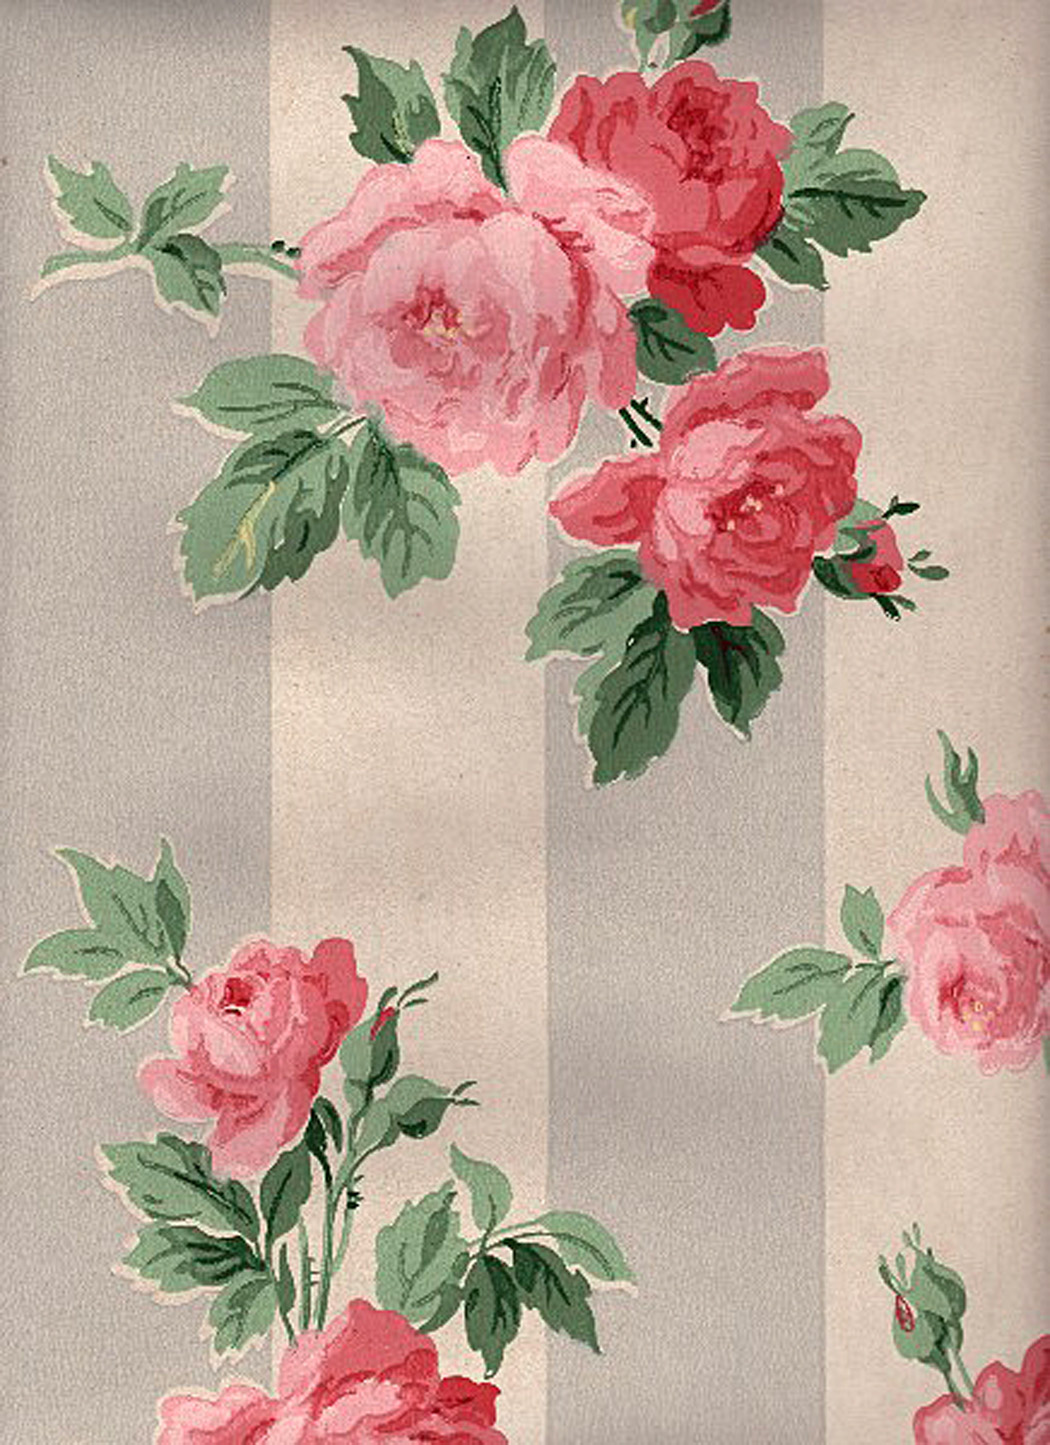 12 Vintage Wallpapers Cabbage Roses And More The Graphics Fairy